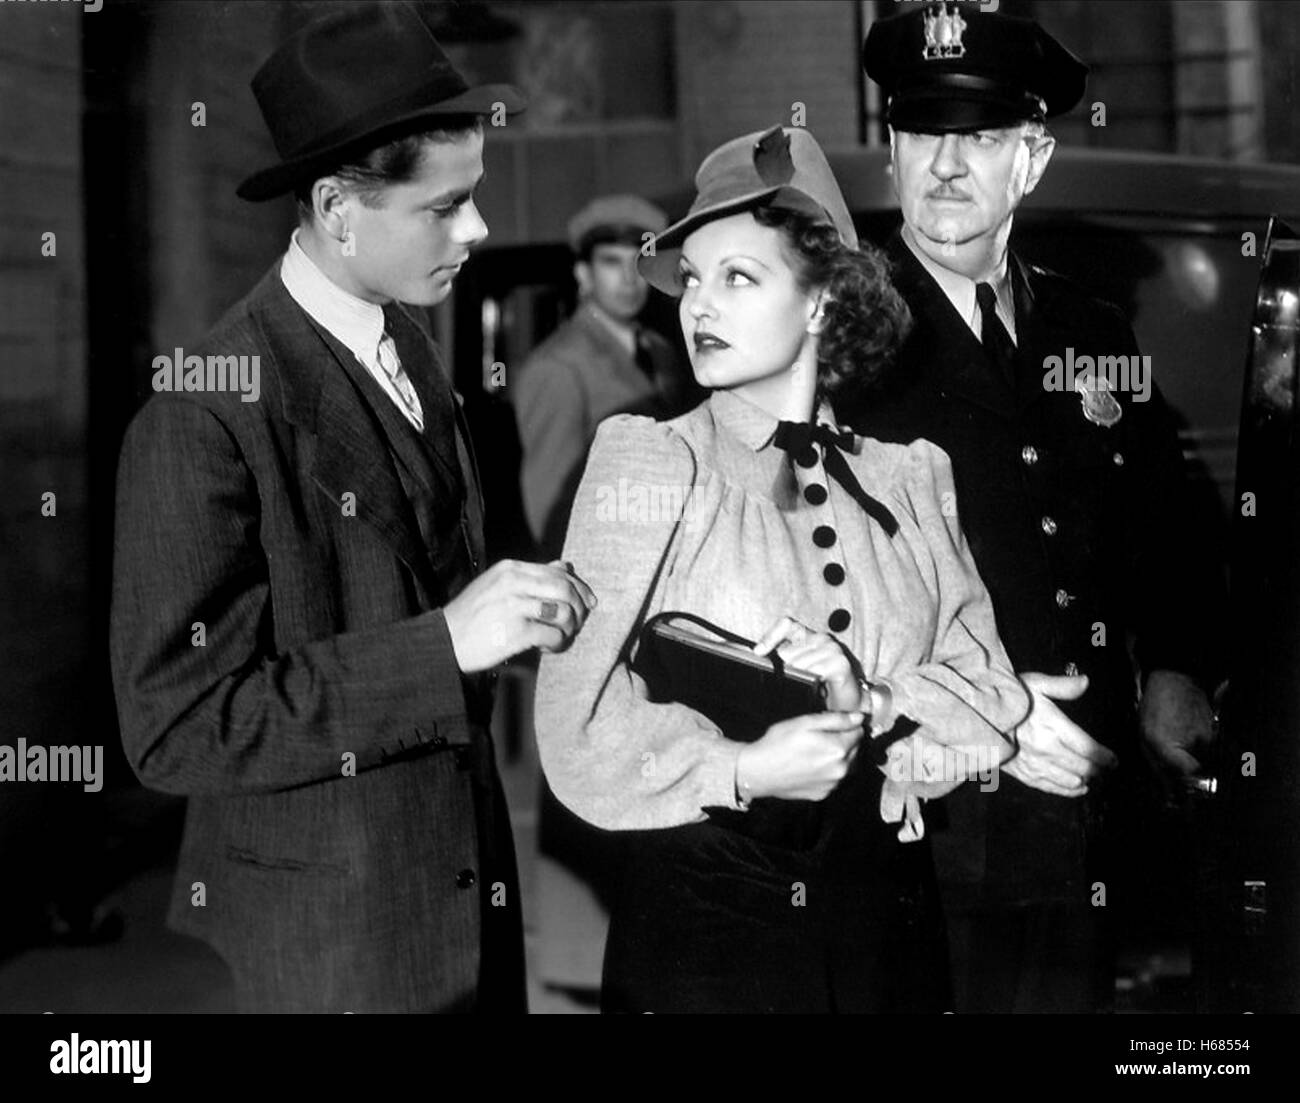 GLENN FORD & ROCHELLE HUDSON CONVICTED WOMAN (1940) - Stock Image